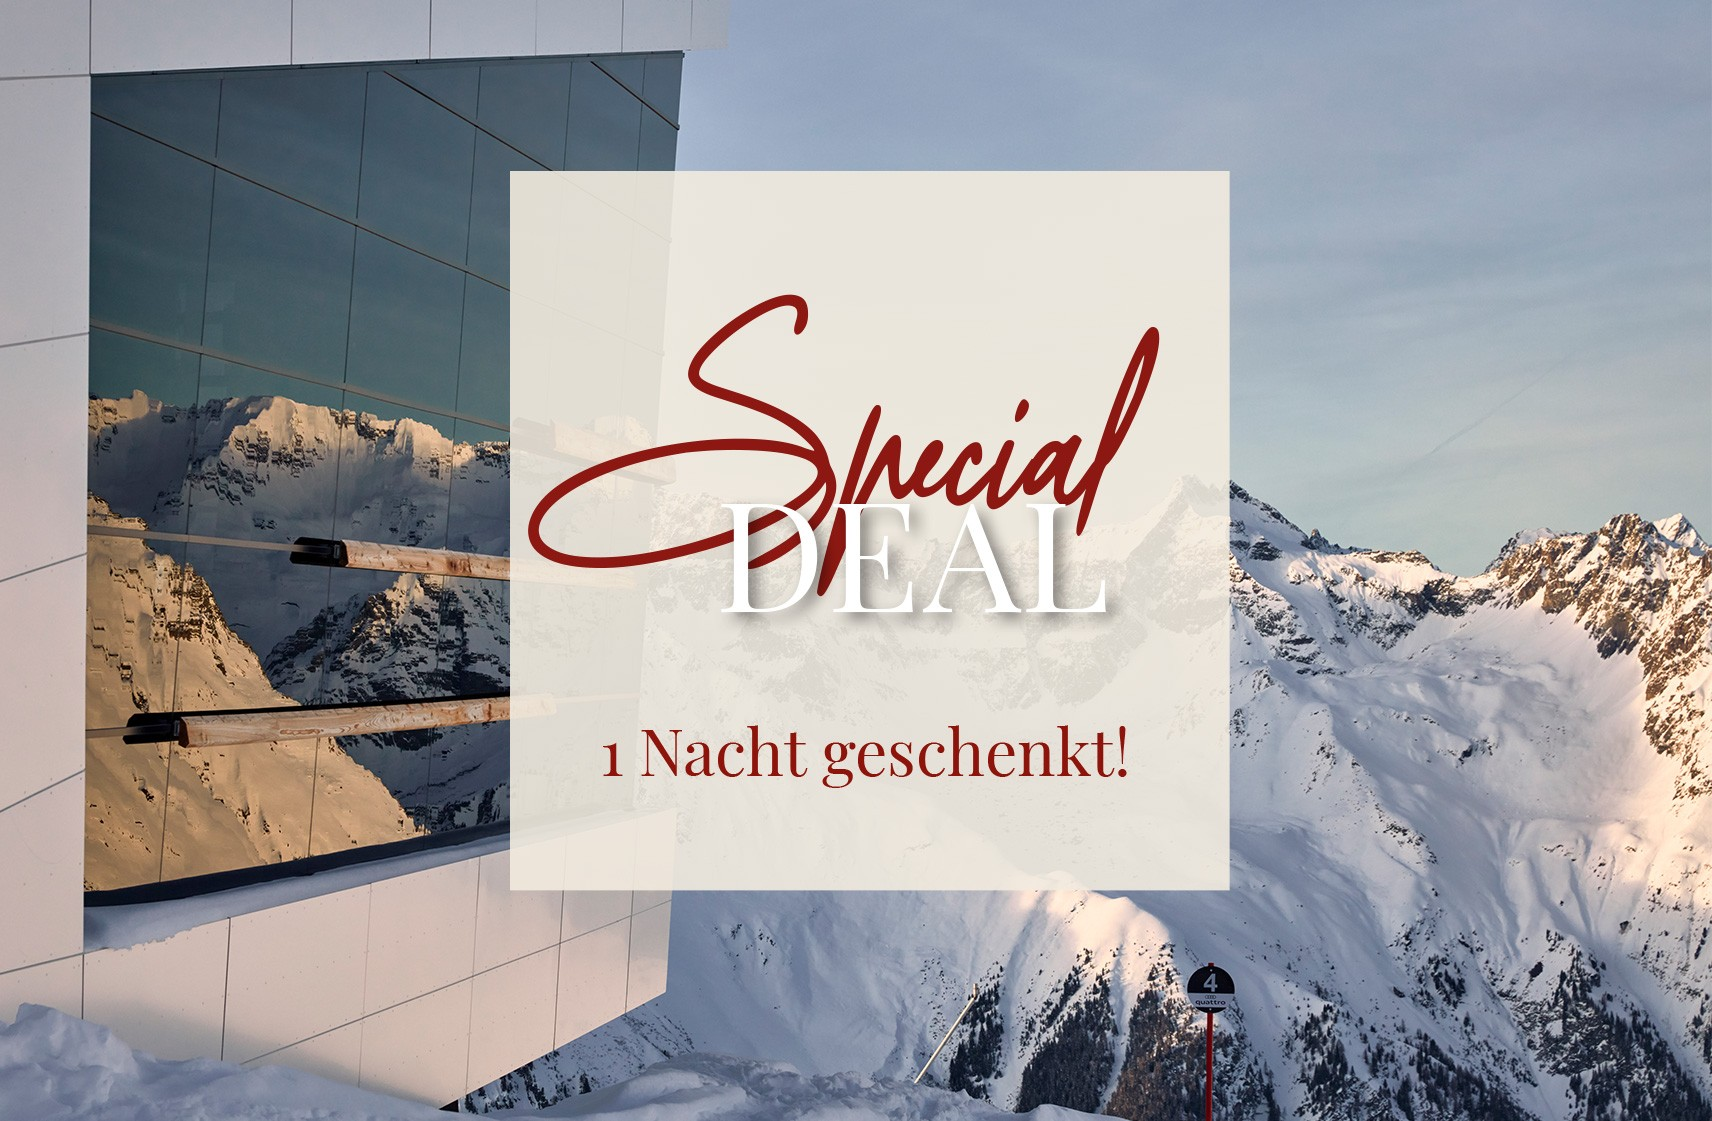 Hotel Chasa Sulai Ischgl Angebot April Special Deal